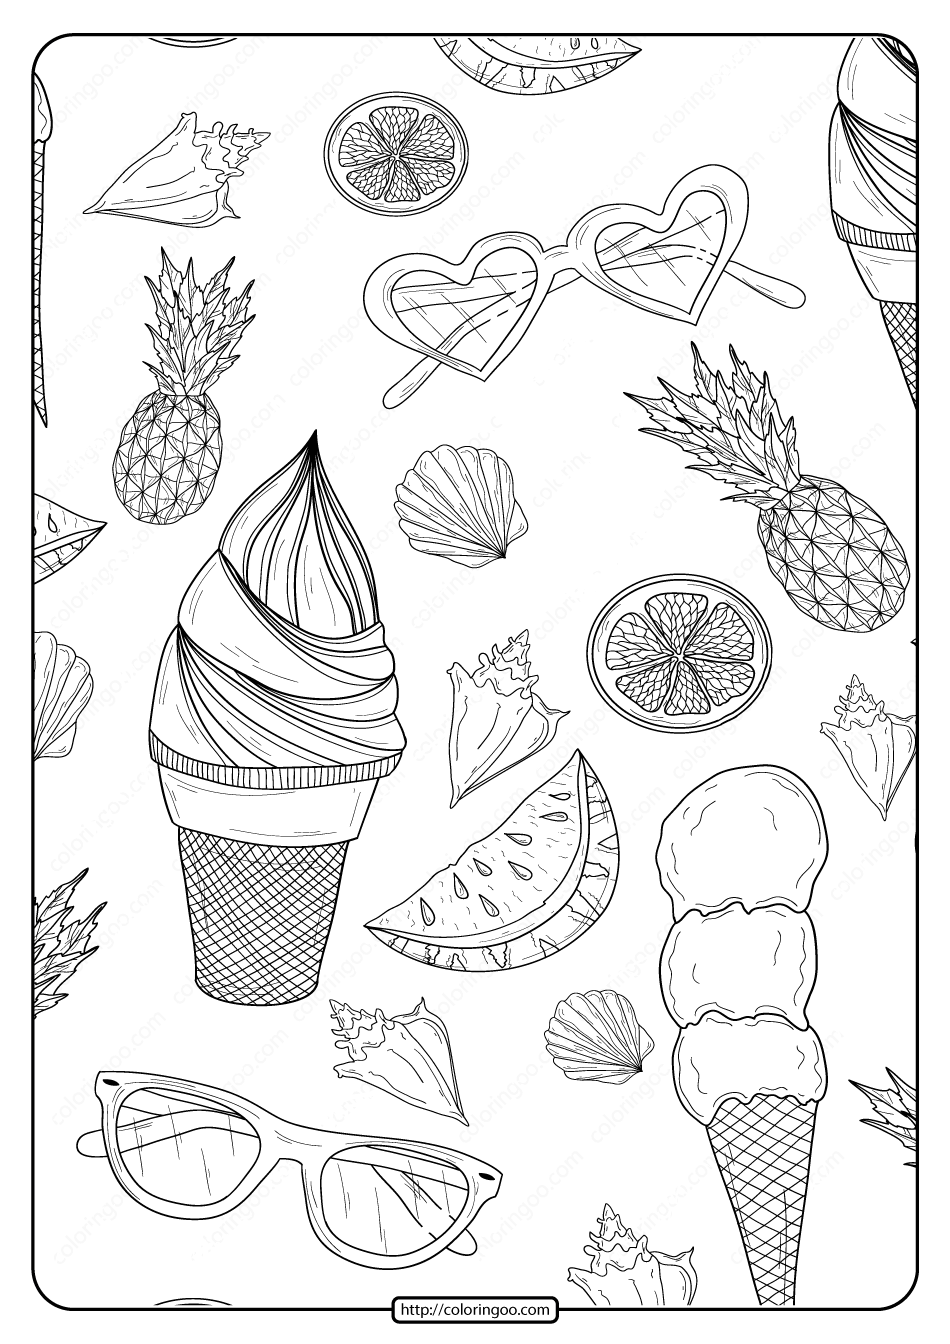 www coloring sheets free printable summer patterns pdf coloring page www coloring sheets